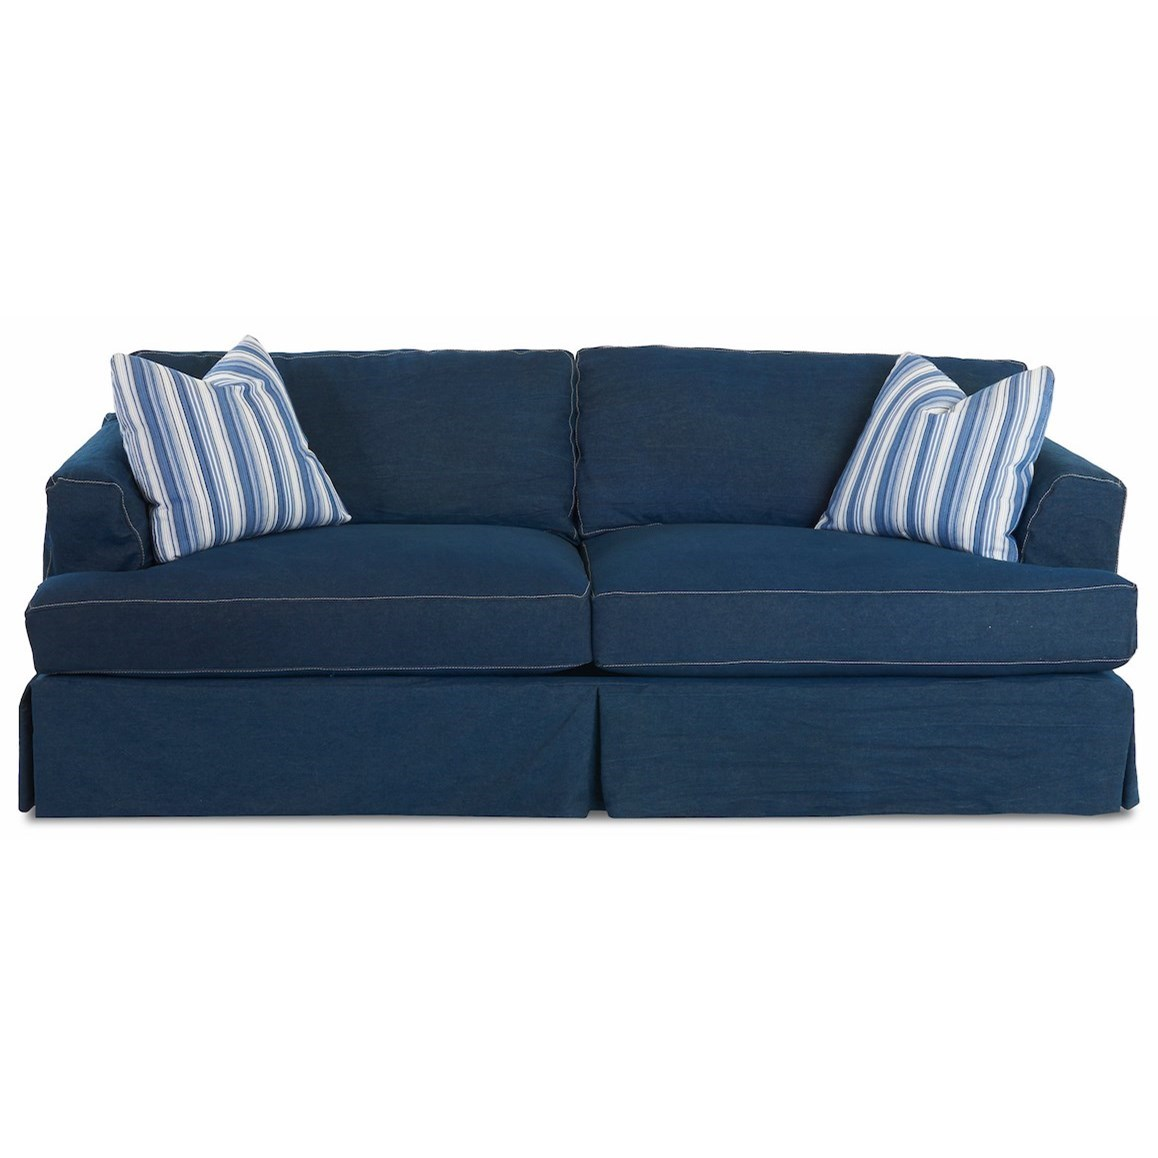 Bentley Slipcover Sofa by Klaussner at Value City Furniture